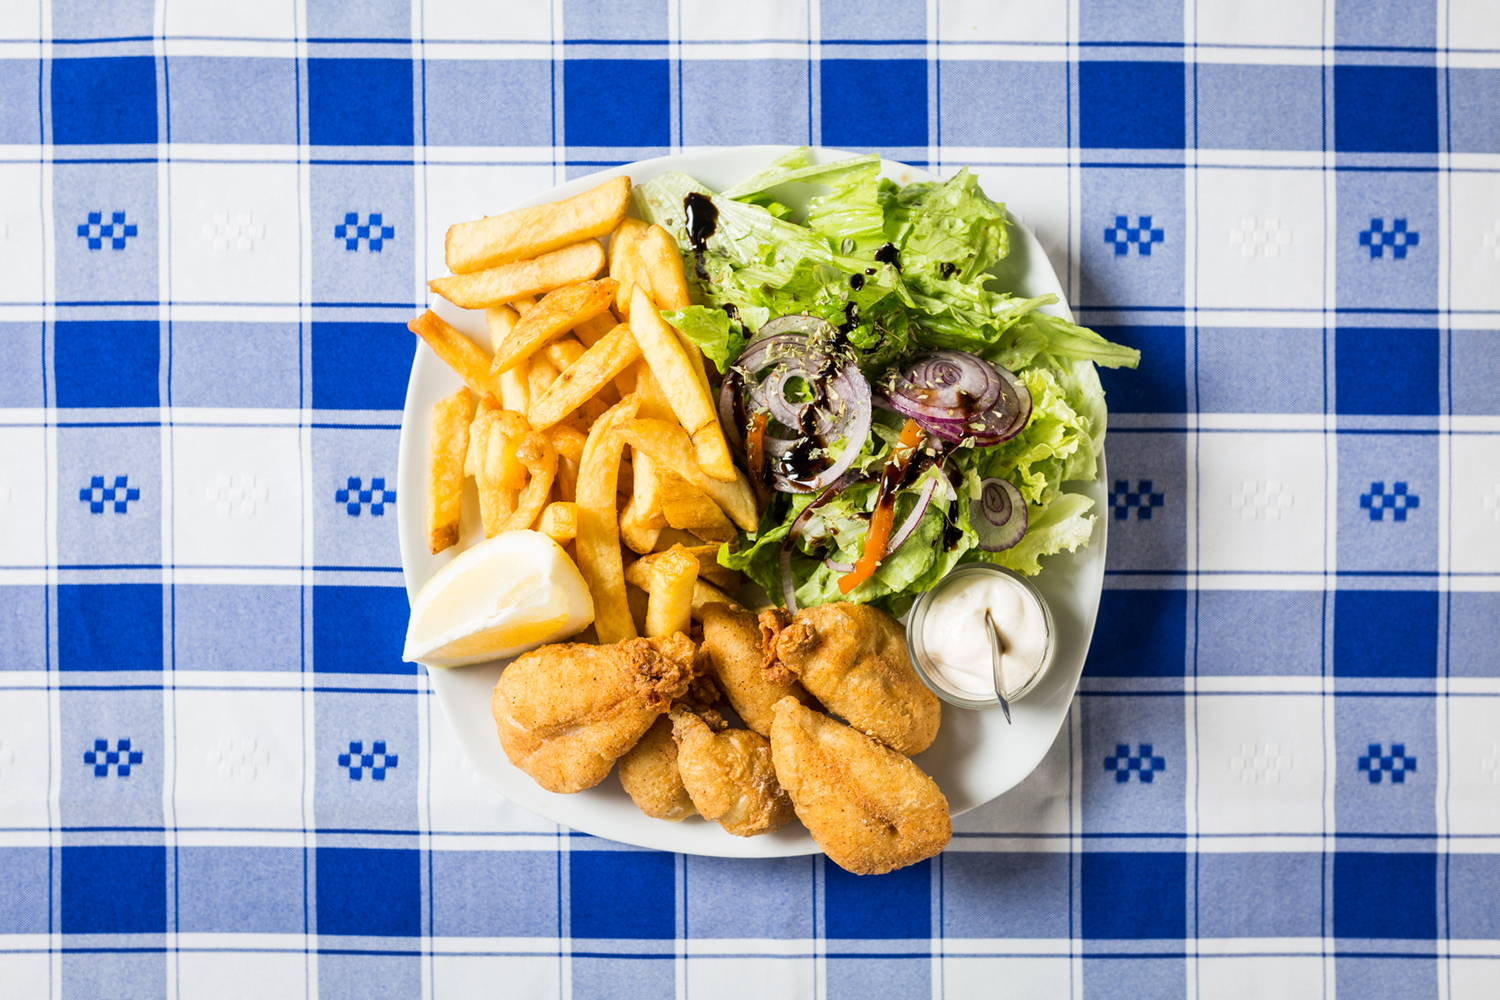 Our team picks chocos fritos or fried cuttlefish as one of the foods to try in Setubal, a short trip away from Lisbon.